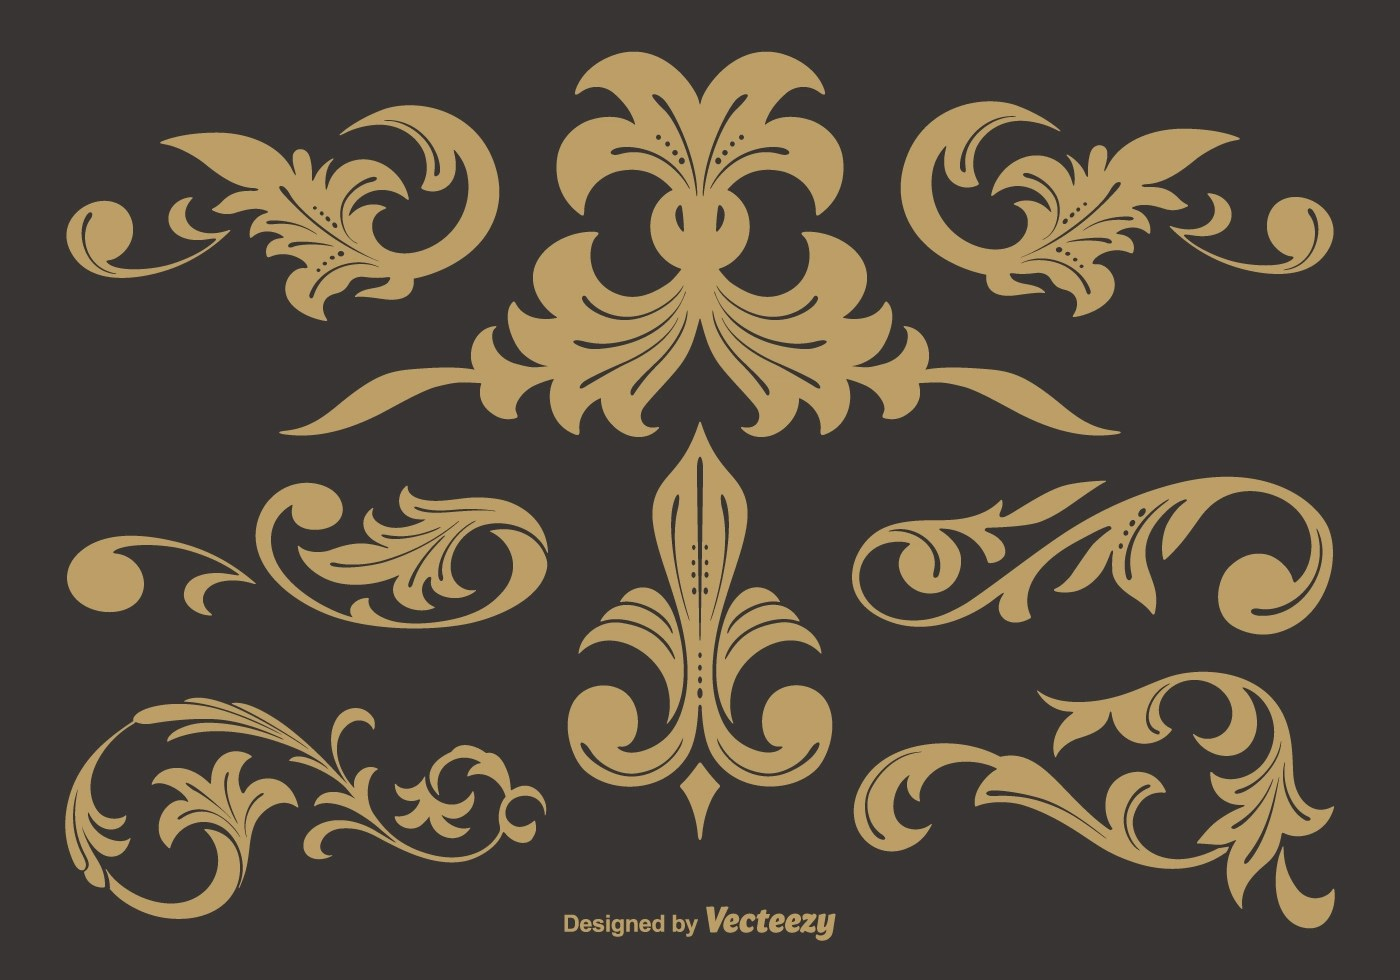 Black And White Victorian Wallpaper Western Flourish Vectors Download Free Vector Art Stock